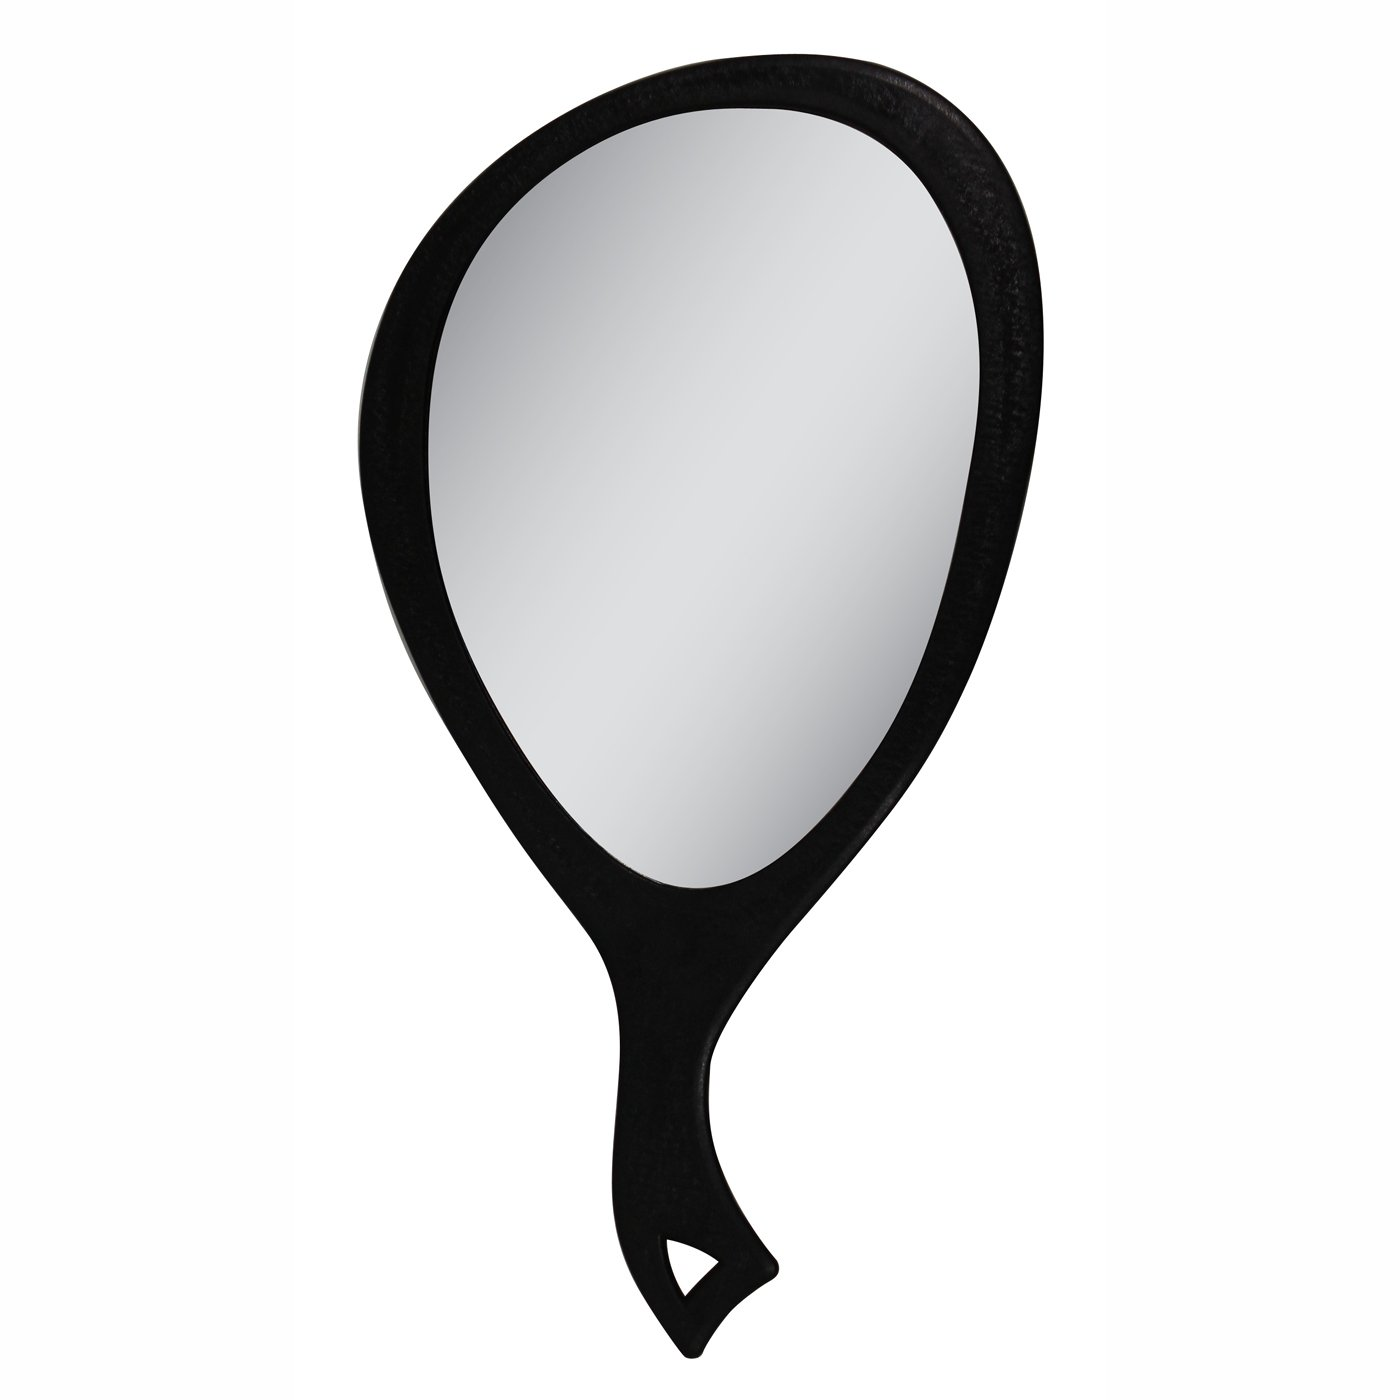 Hand Held Mirror Clipart Handheld Mirror Clipart